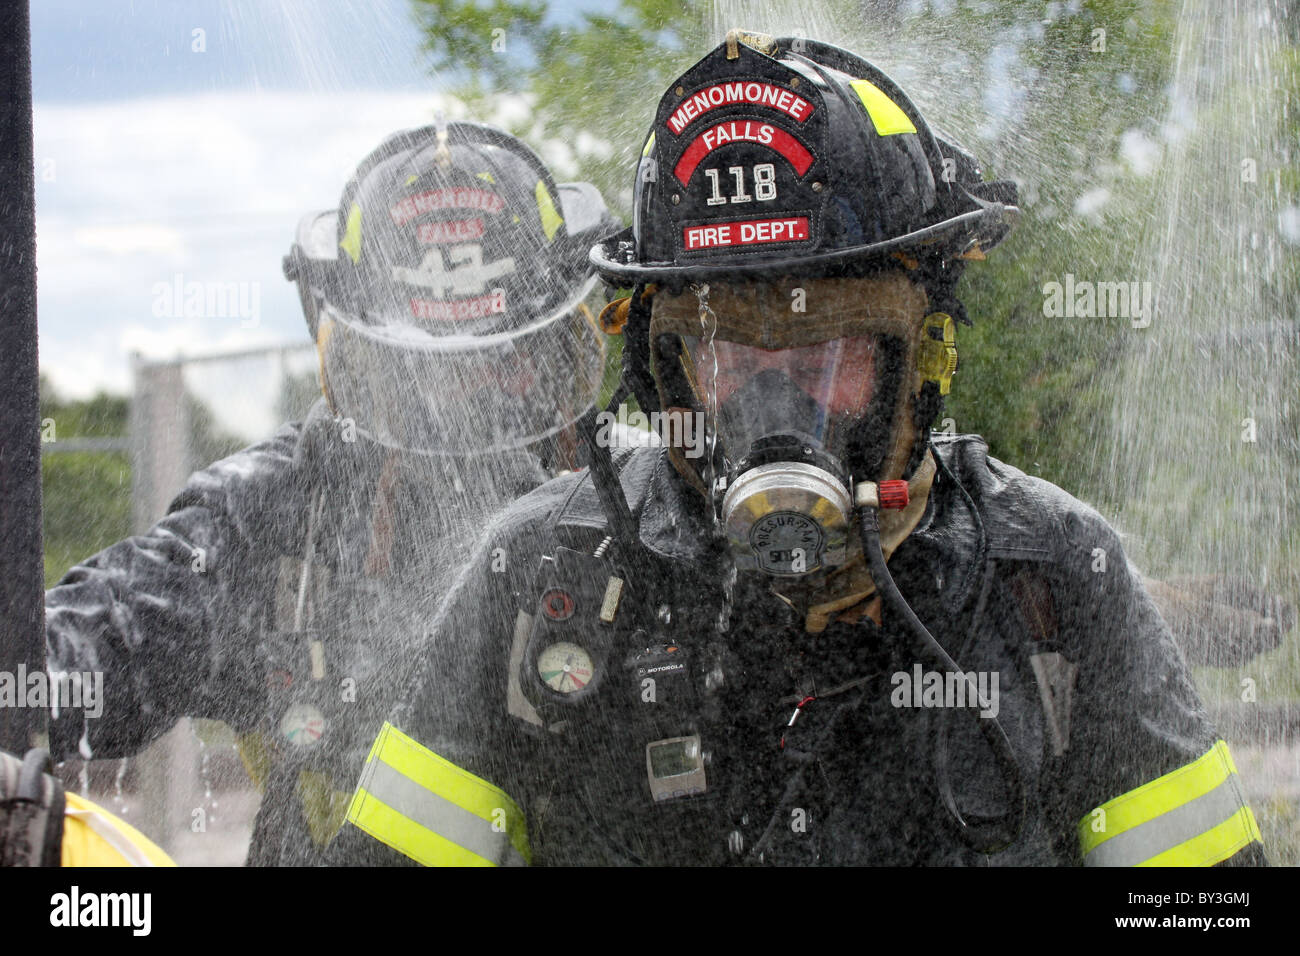 A firefighter getting sprayed down after a chemical haz mat spill incident - Stock Image